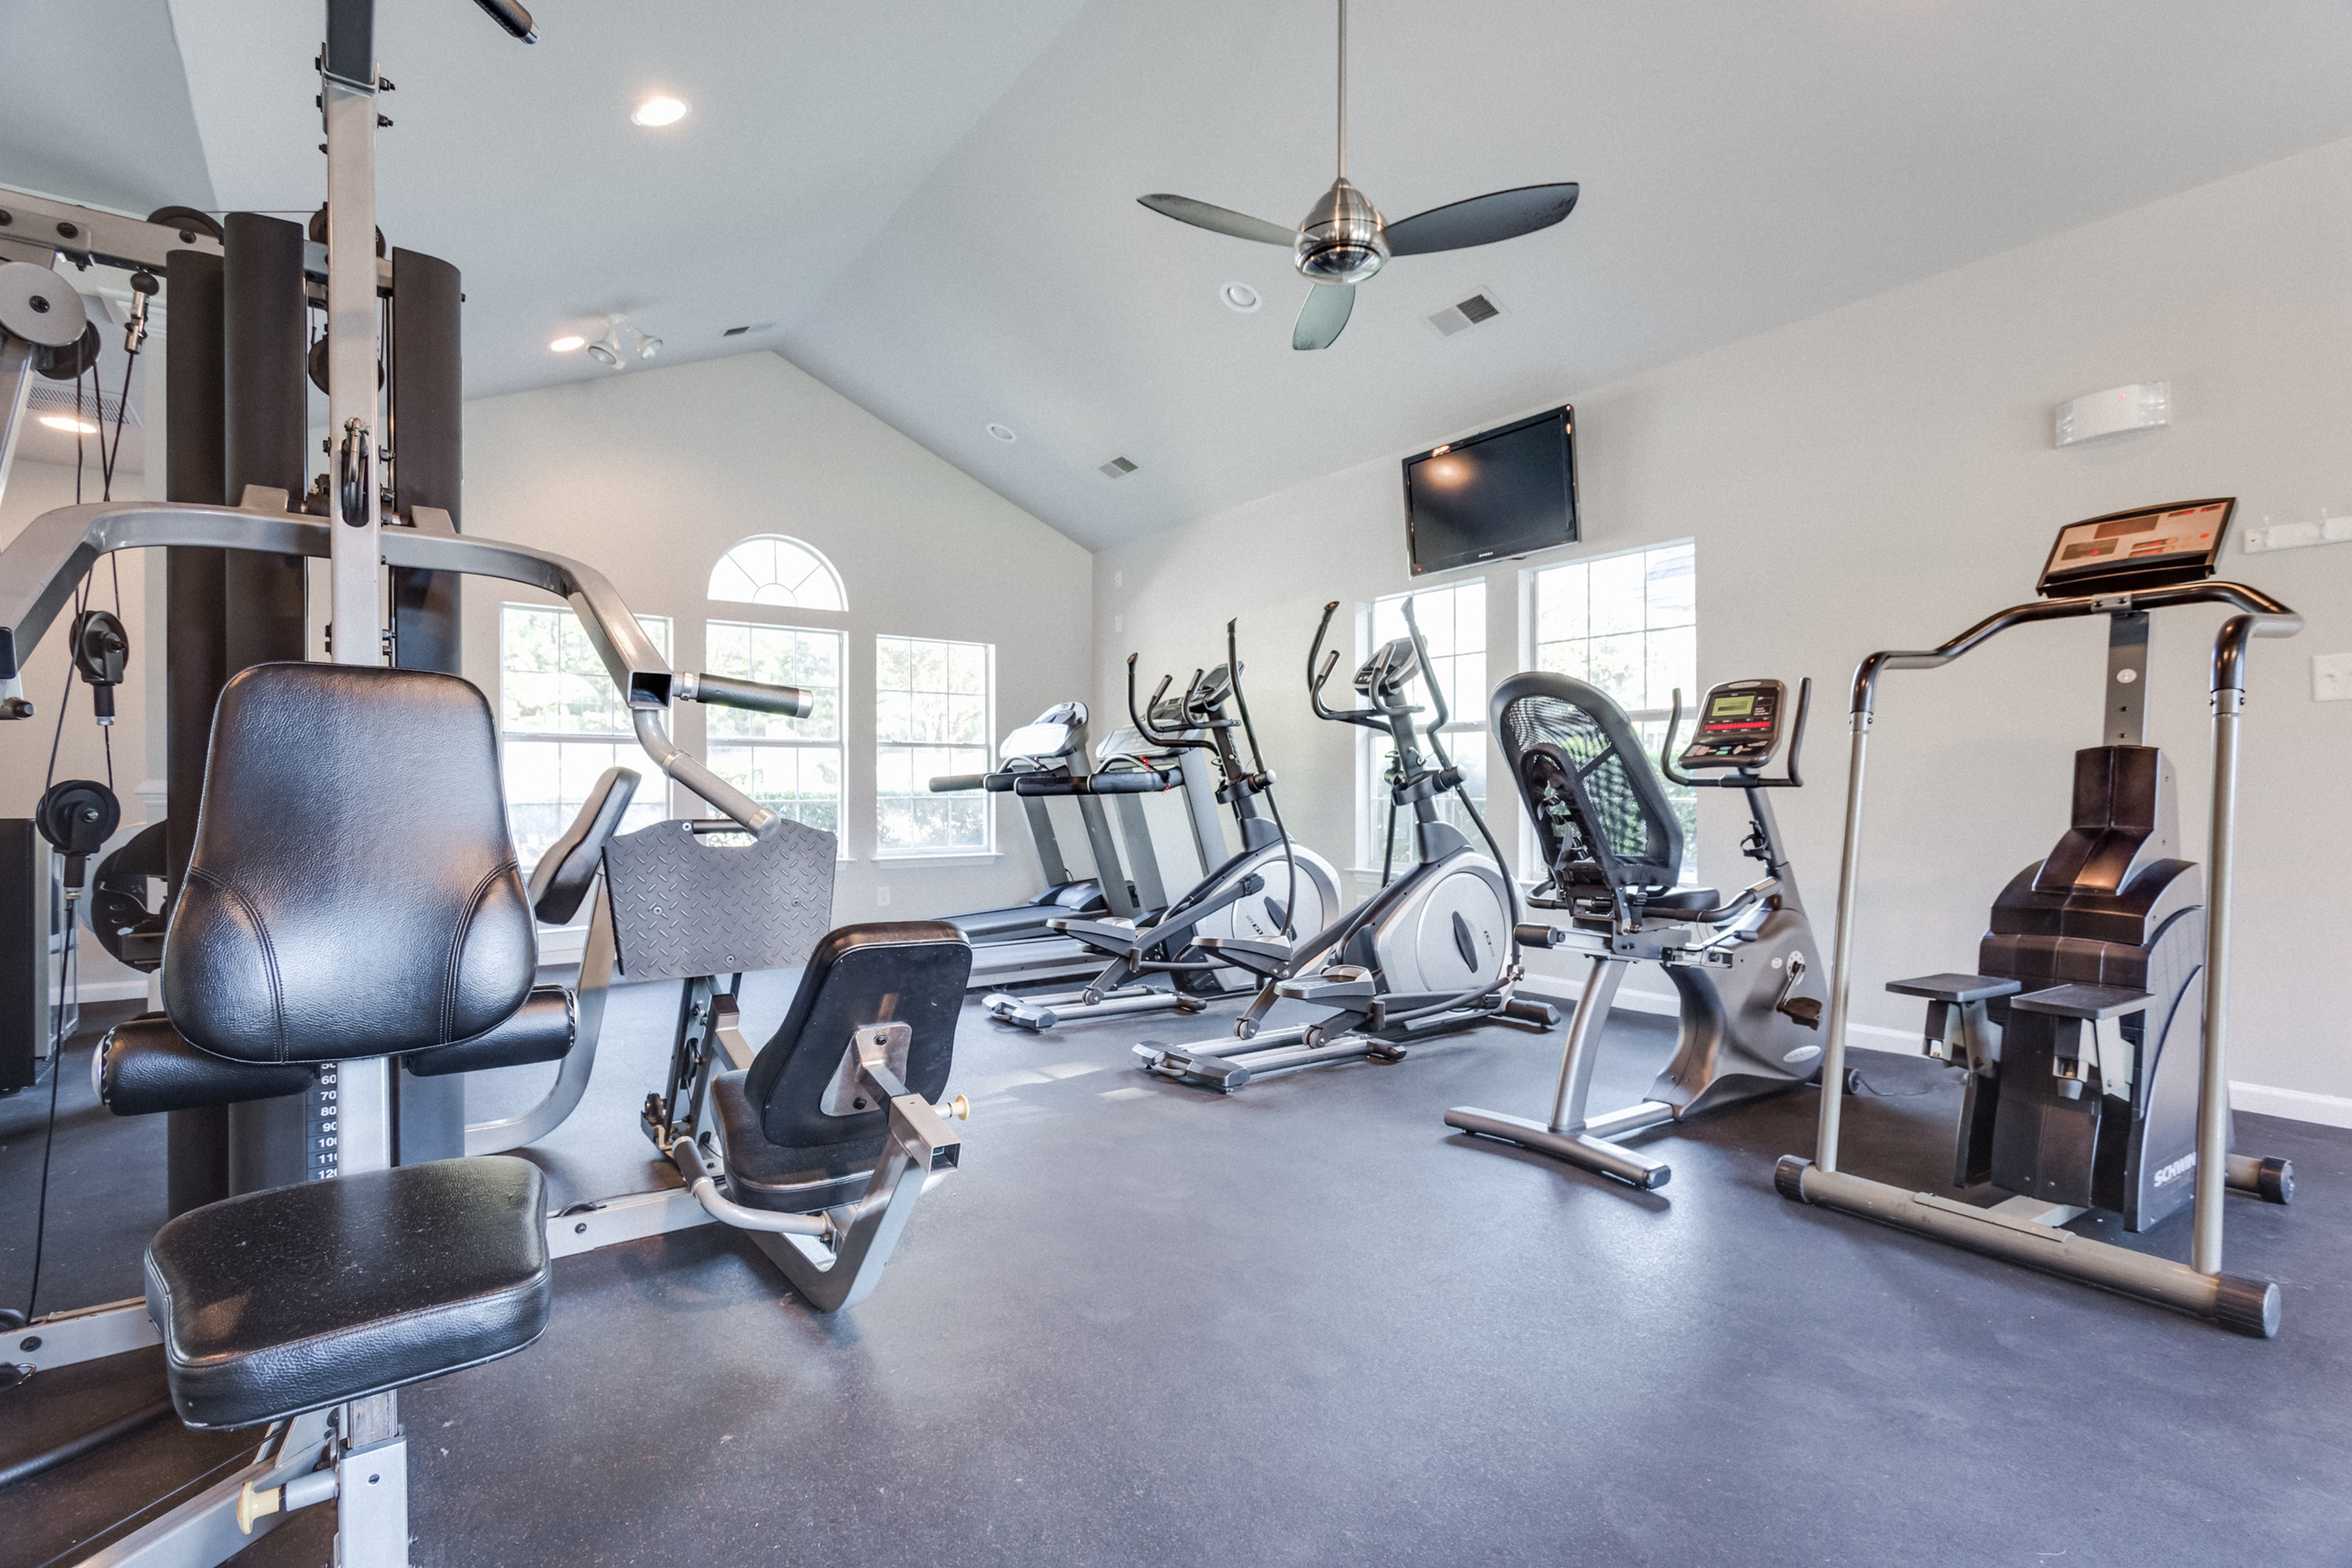 View of Fitness Center, Showing Weight Benches, Stair Stepper, Treadmills, Bike, Ceiling Fan, and Flat Screen TV at Midtown Crossing Apartments